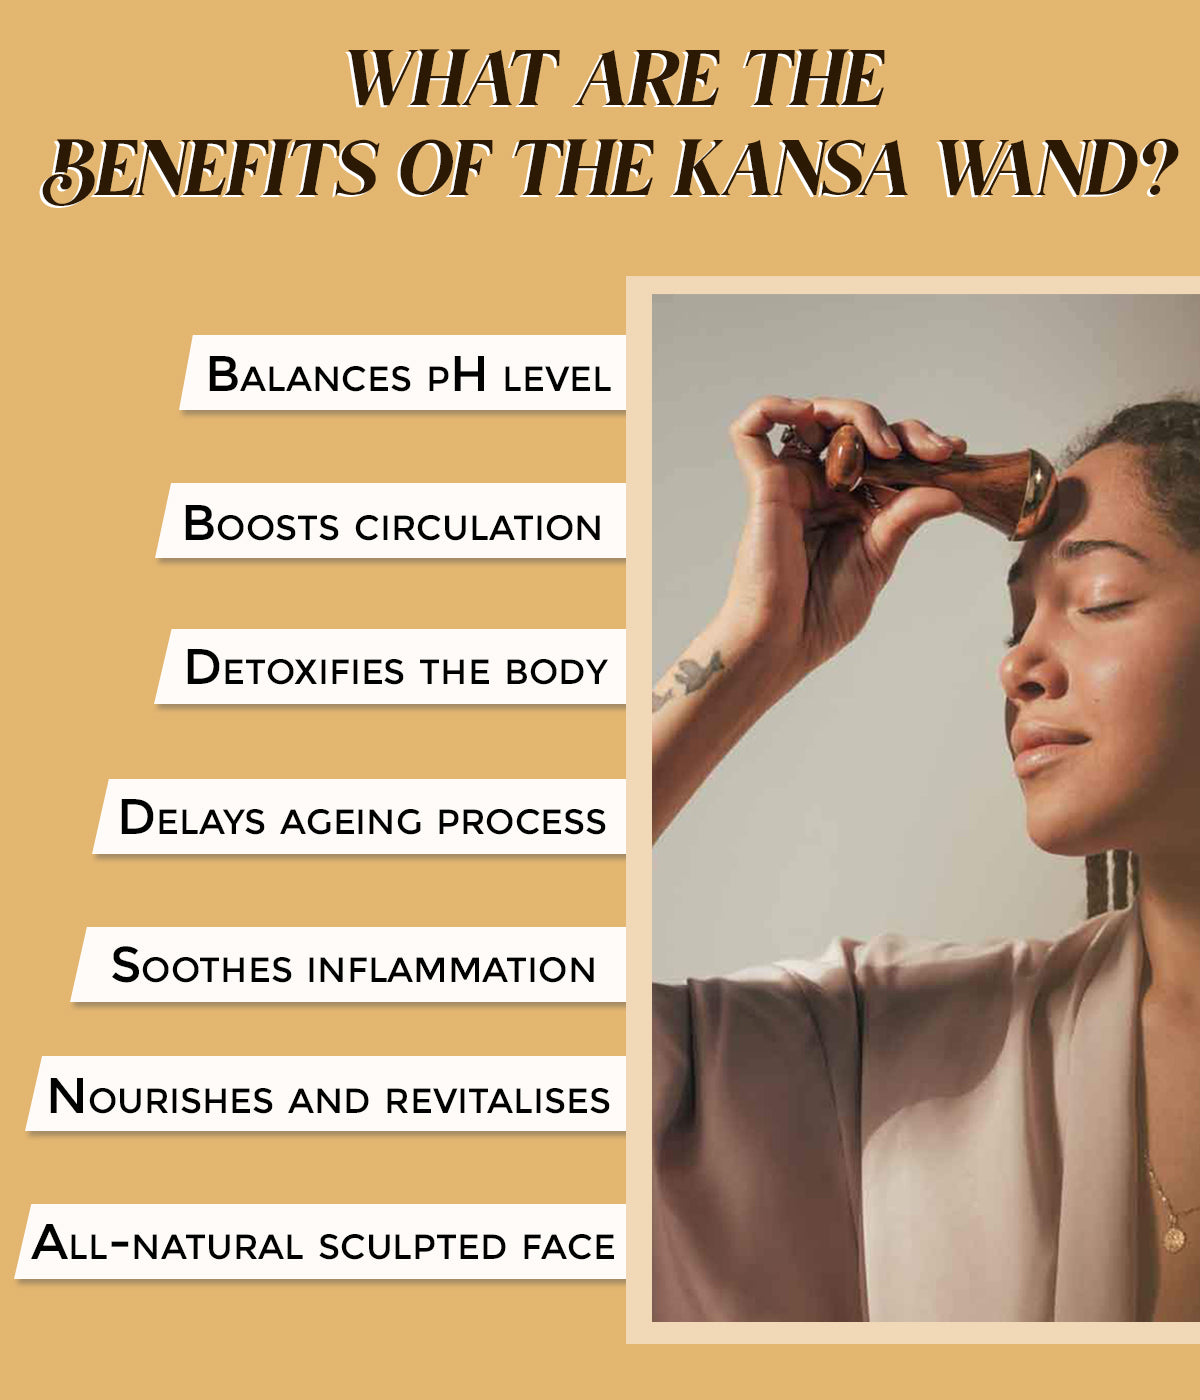 This is an image of the benefits of the Kansa Wand by Shankara, available on www.sublimelife.in